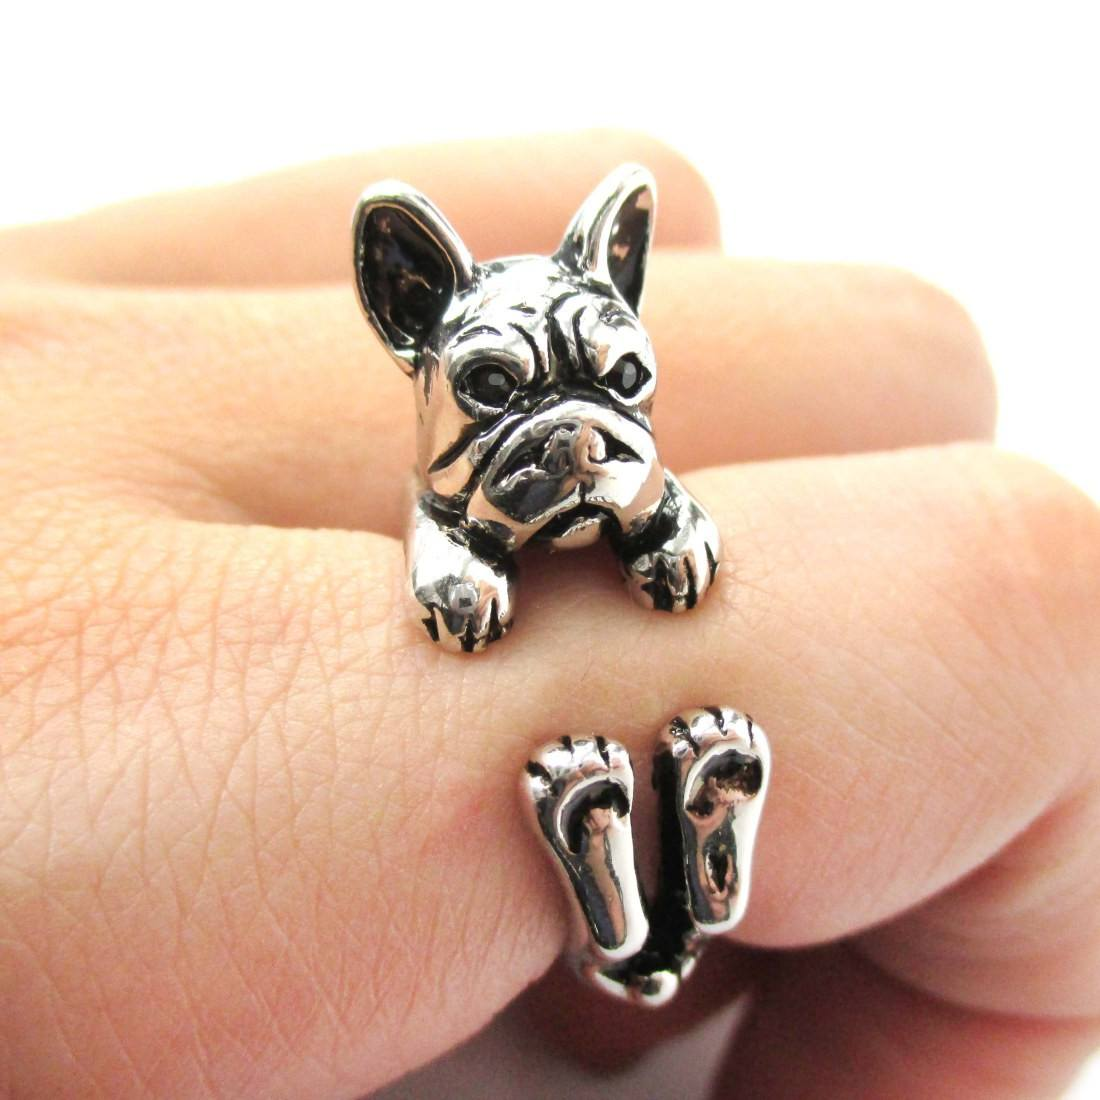 Grumpy French Bulldog Dog Shaped Animal Wrap Around Ring Shiny Silver